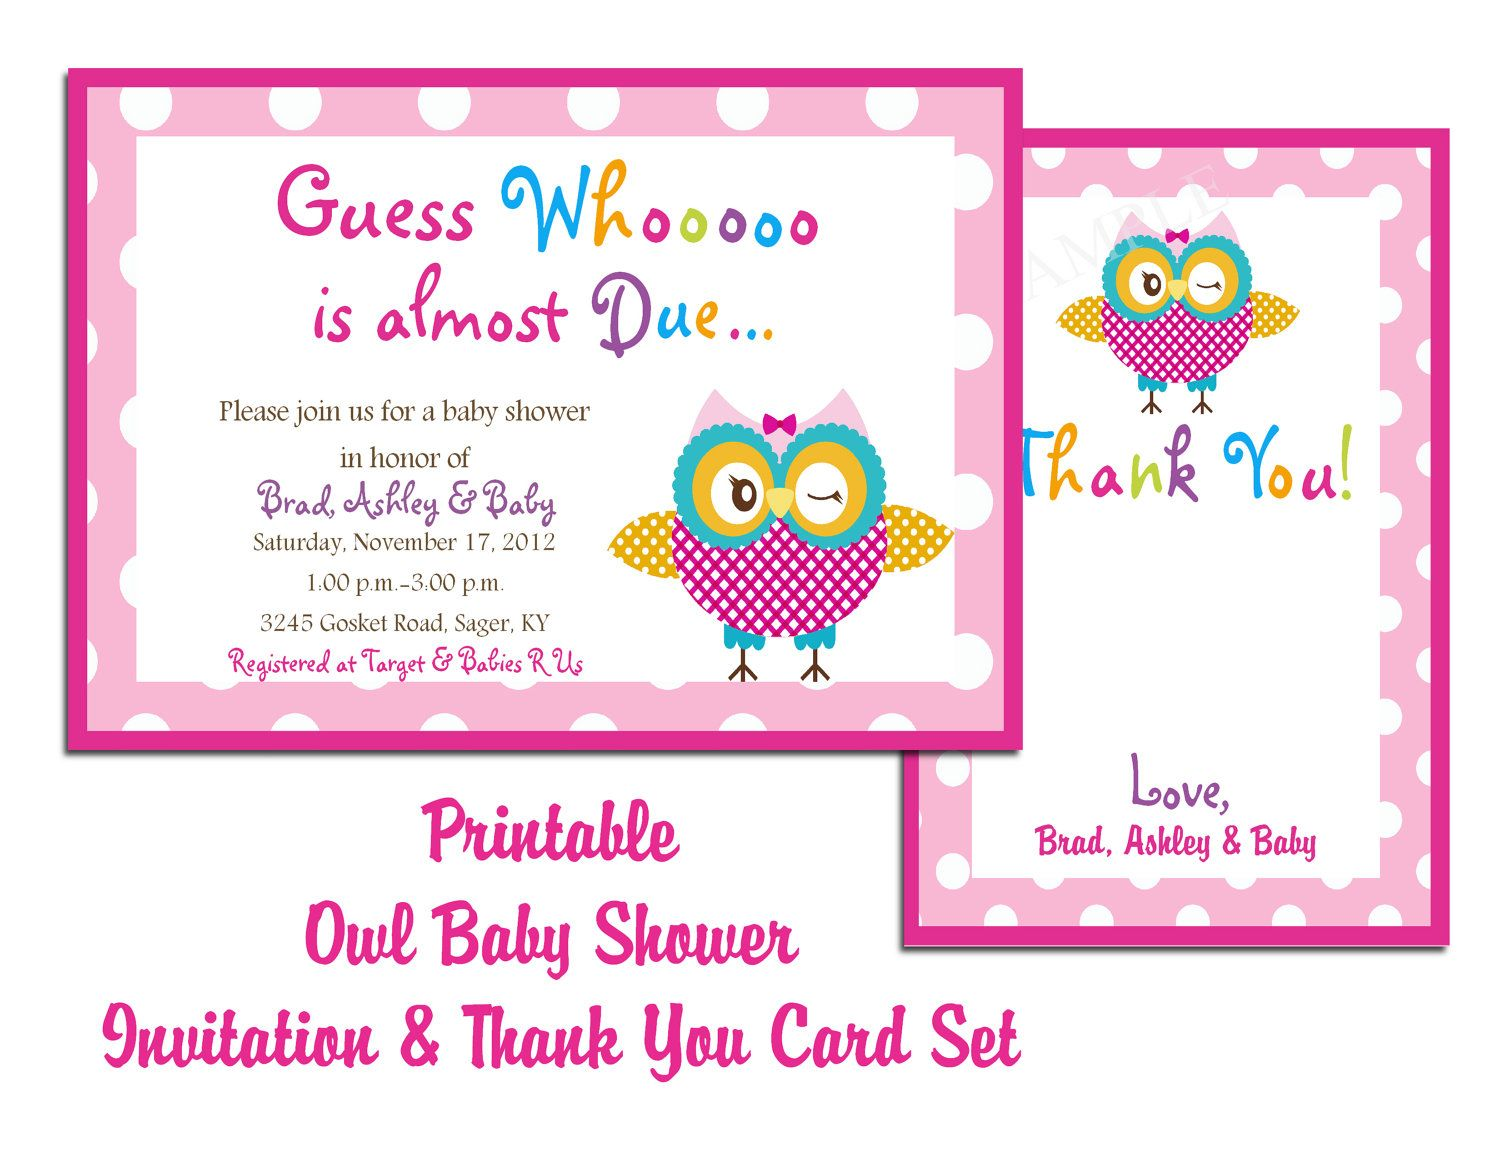 printable ladybug baby shower invitations templates getting printable ladybug baby shower invitations templates